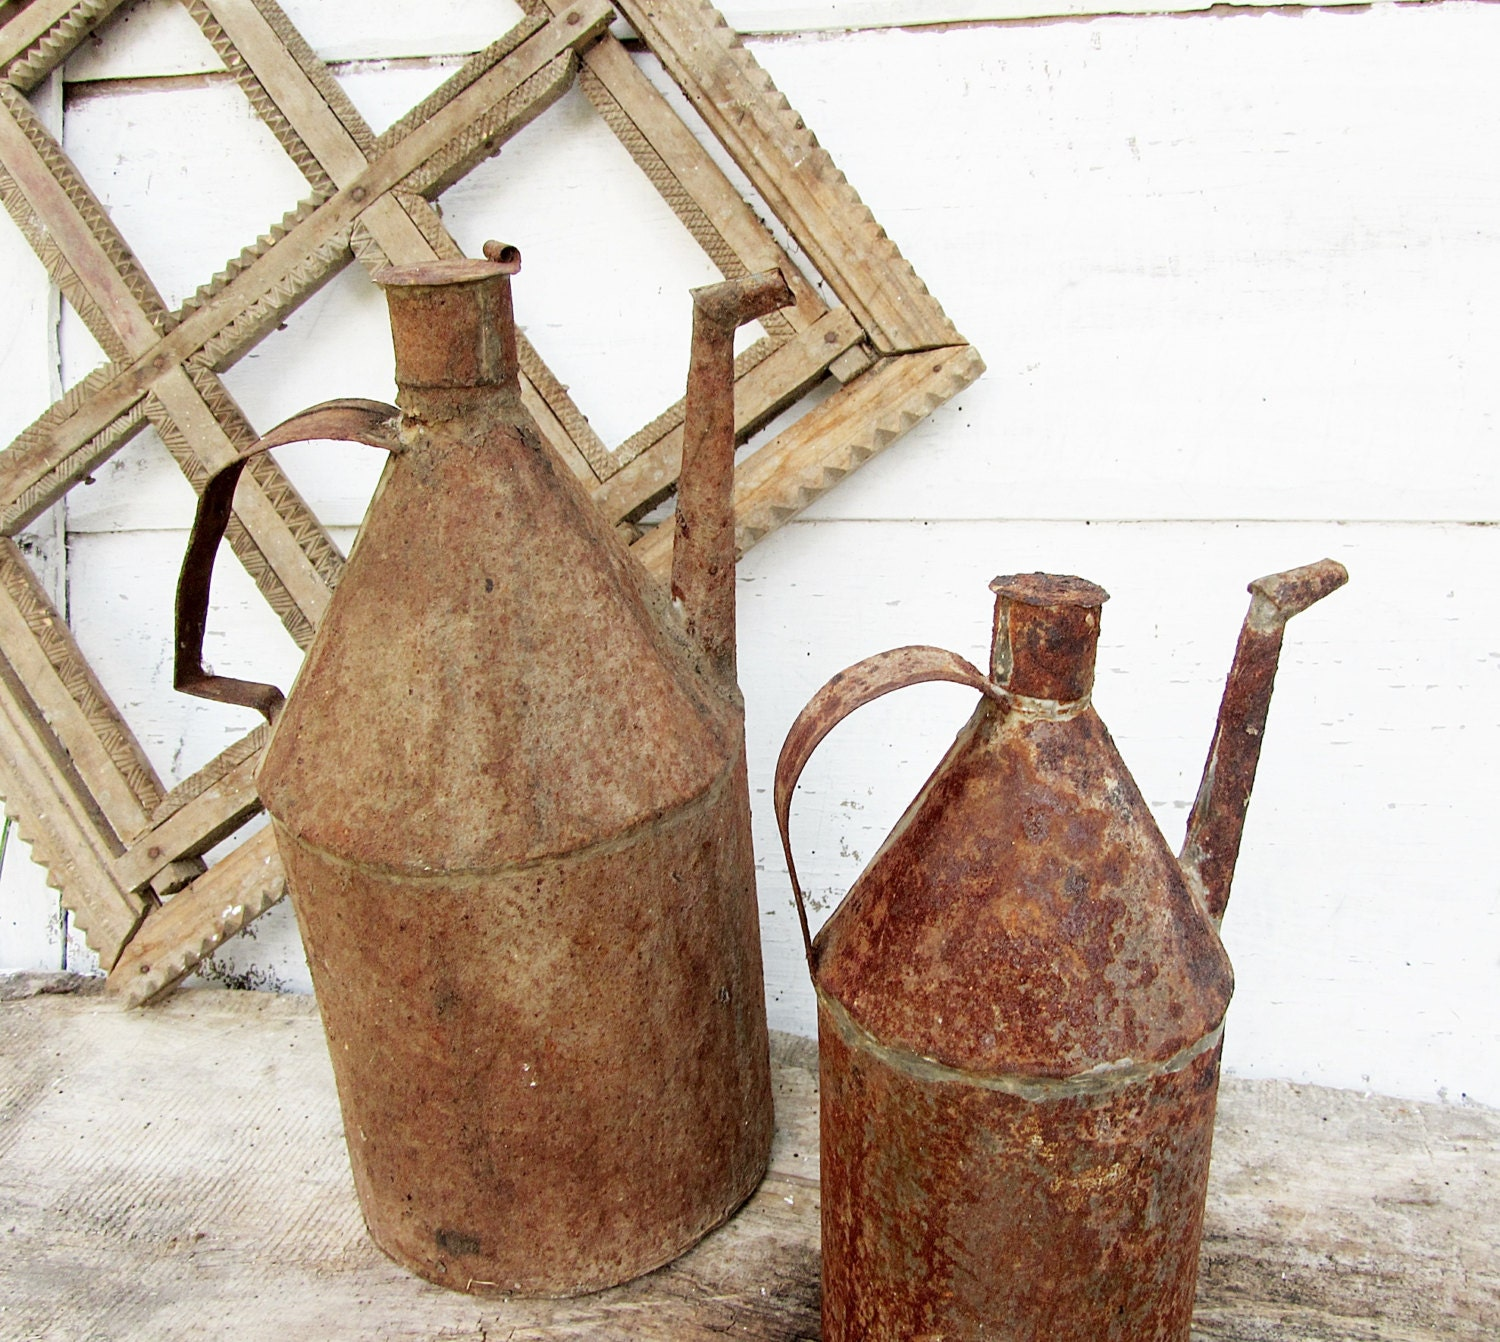 Antique metal bottle,Petroleum bottle,Gasoline bottle,Primitive  bottle,Rustic home decor,Cottage chic,Farmhouse decor,Rust metal,Old bottle - ANTIQUEcountry